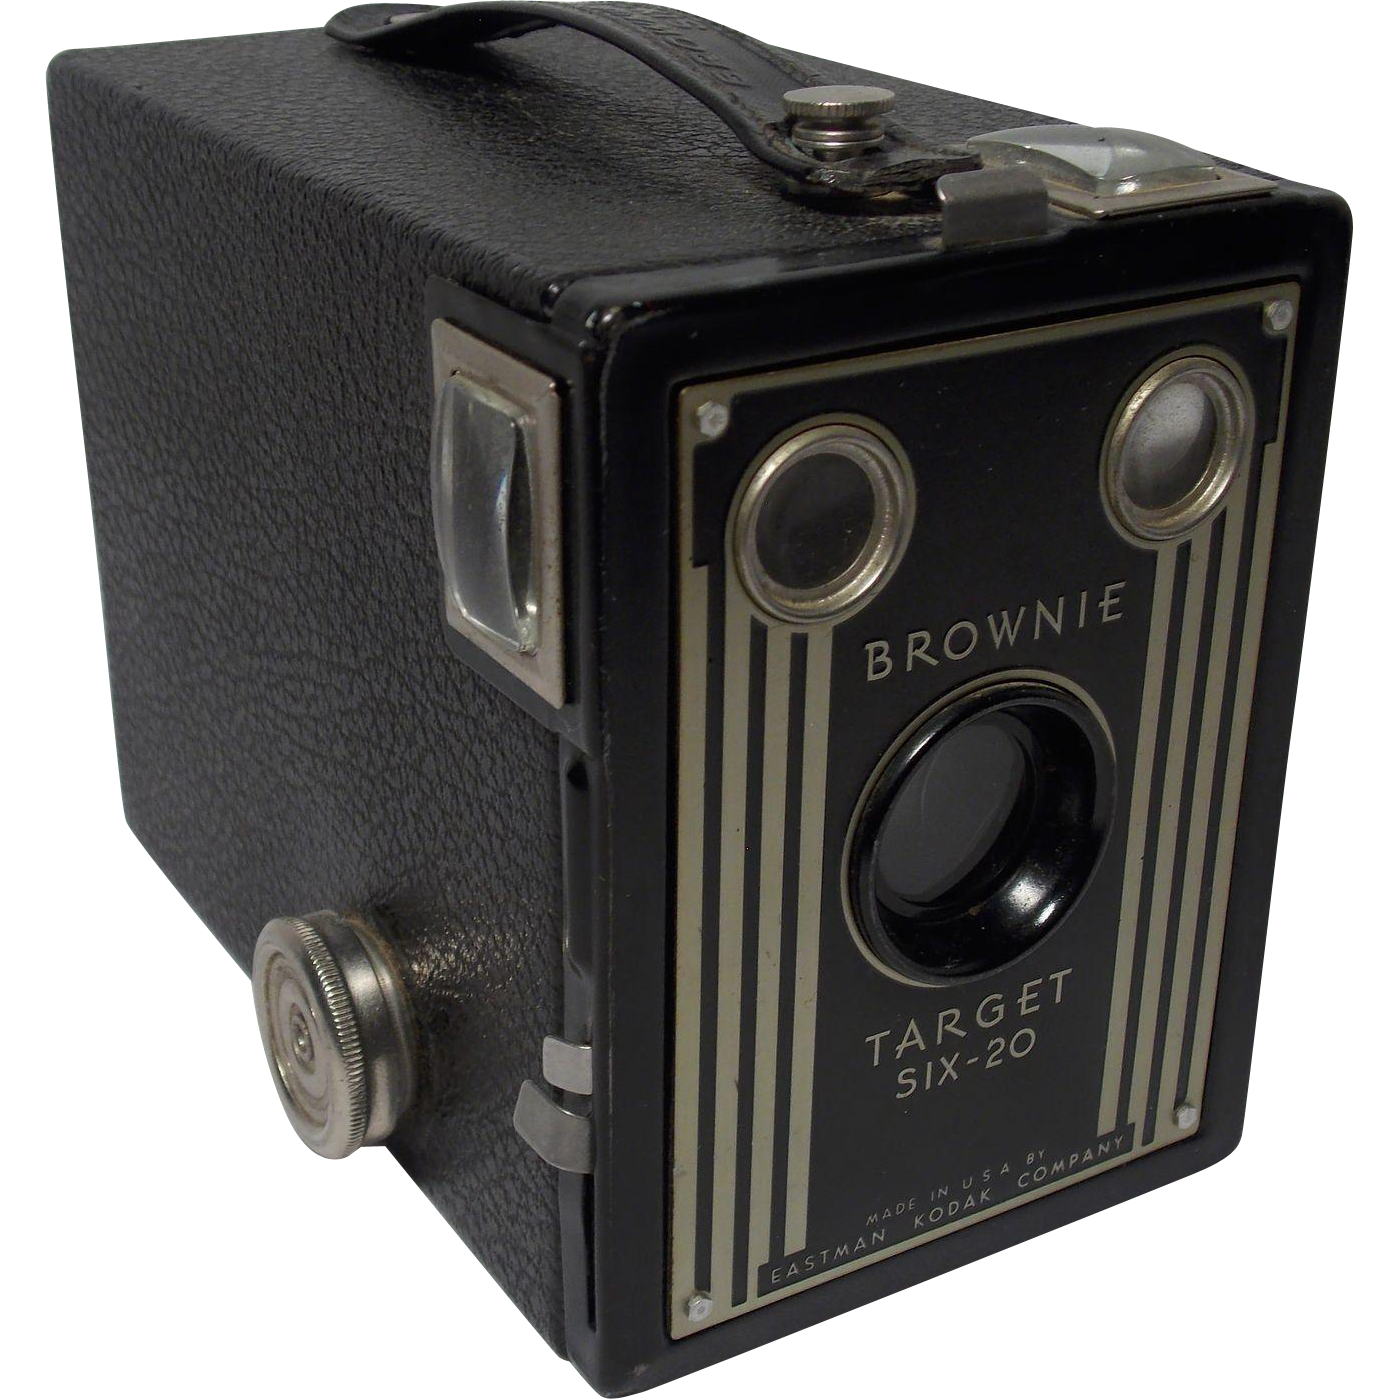 brownie camera Check item availability and take advantage of 1-hour pickup option at your store change store.